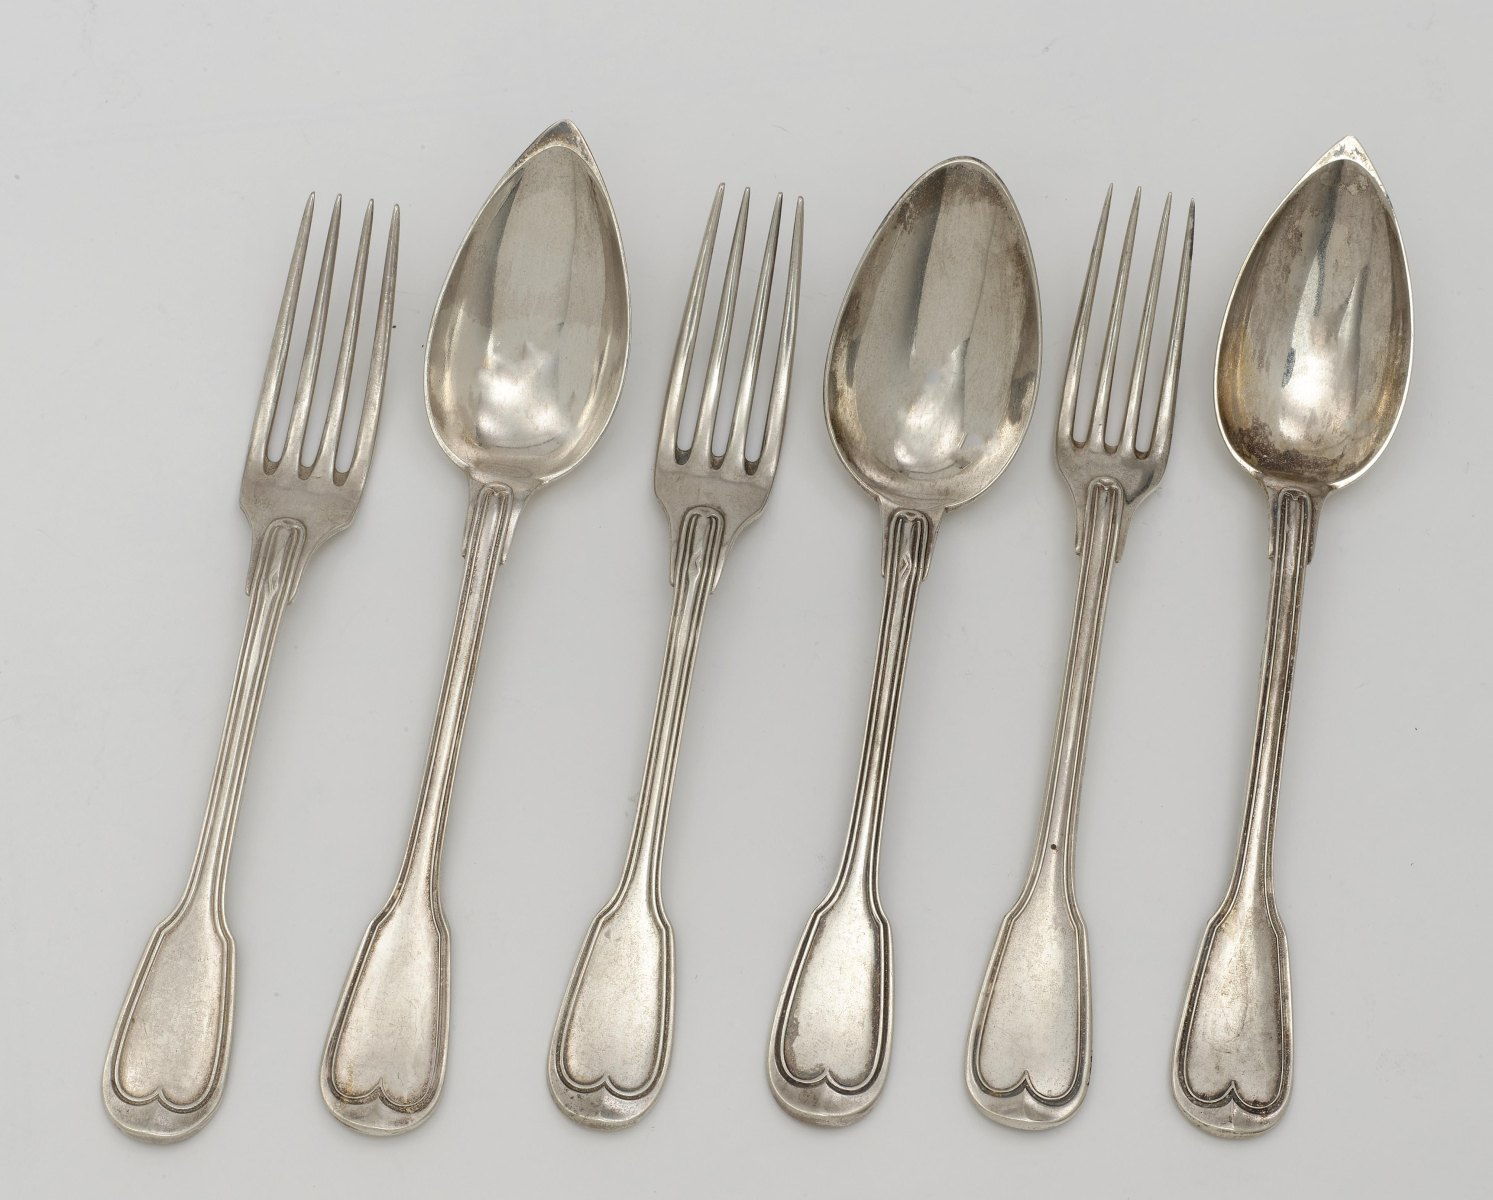 32 cutlery items